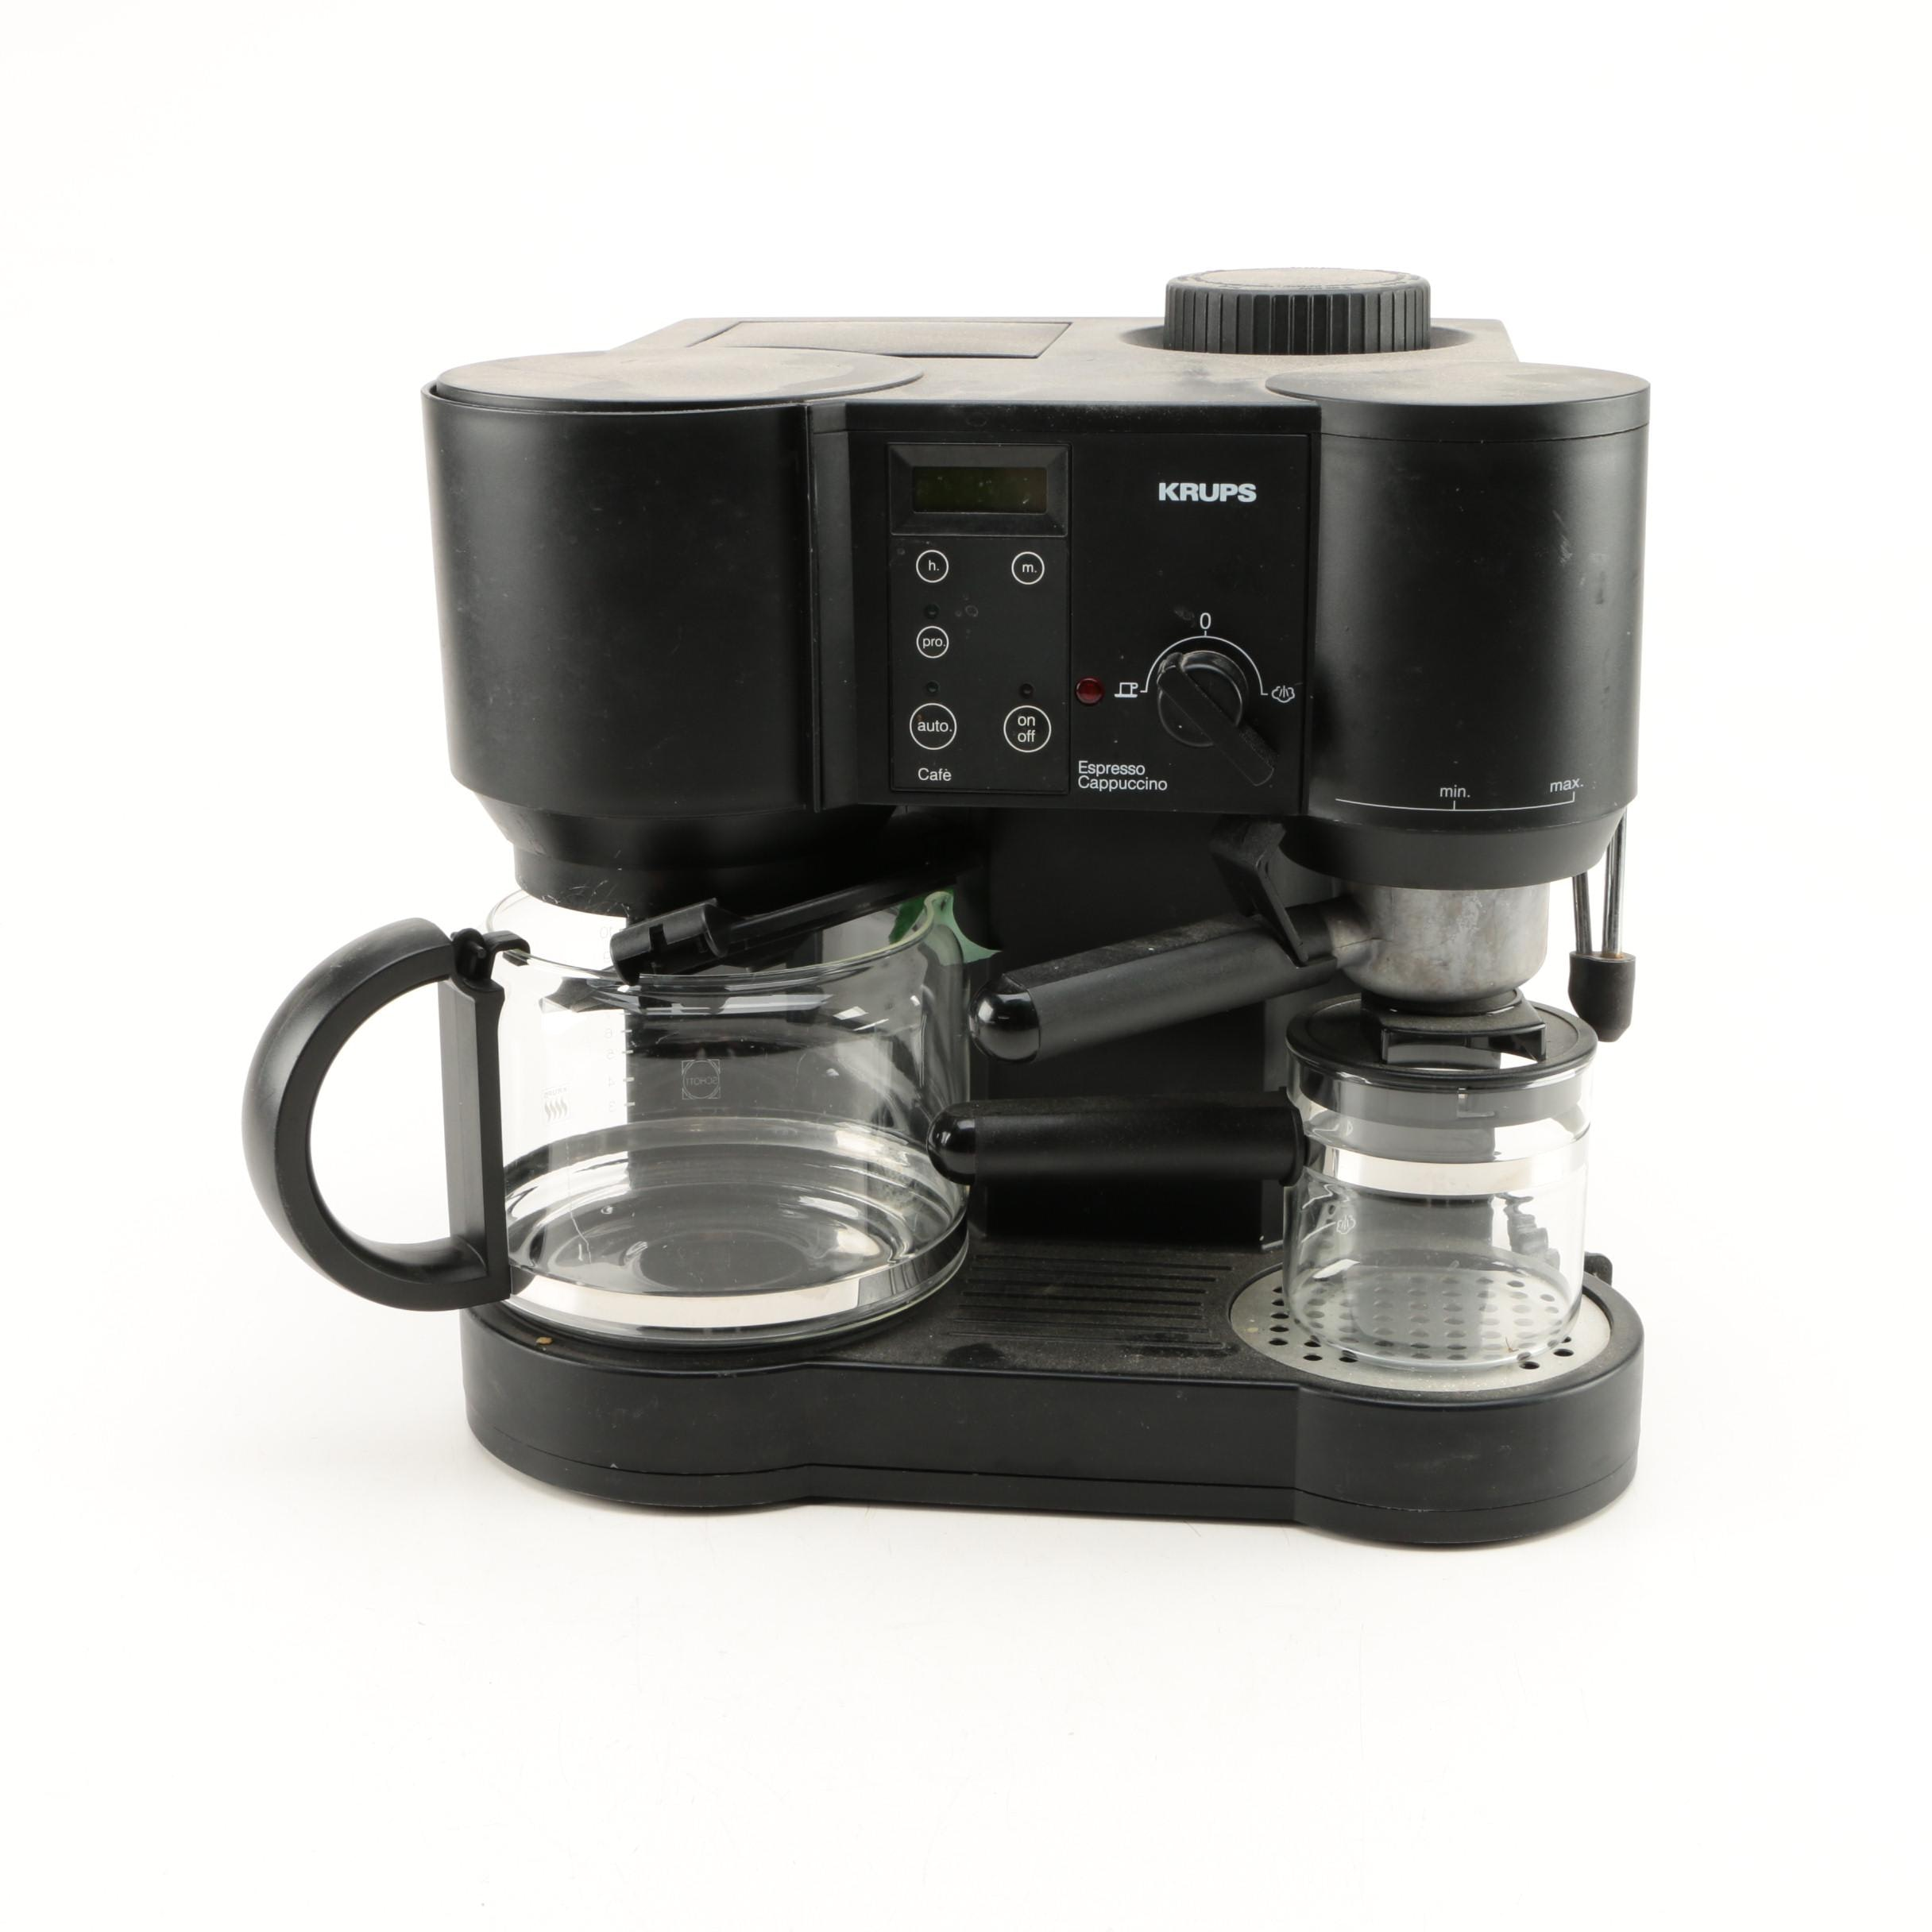 krups espresso maker krups coffee makers u0026 grinders krups xp604050 combi espresso machine. Black Bedroom Furniture Sets. Home Design Ideas